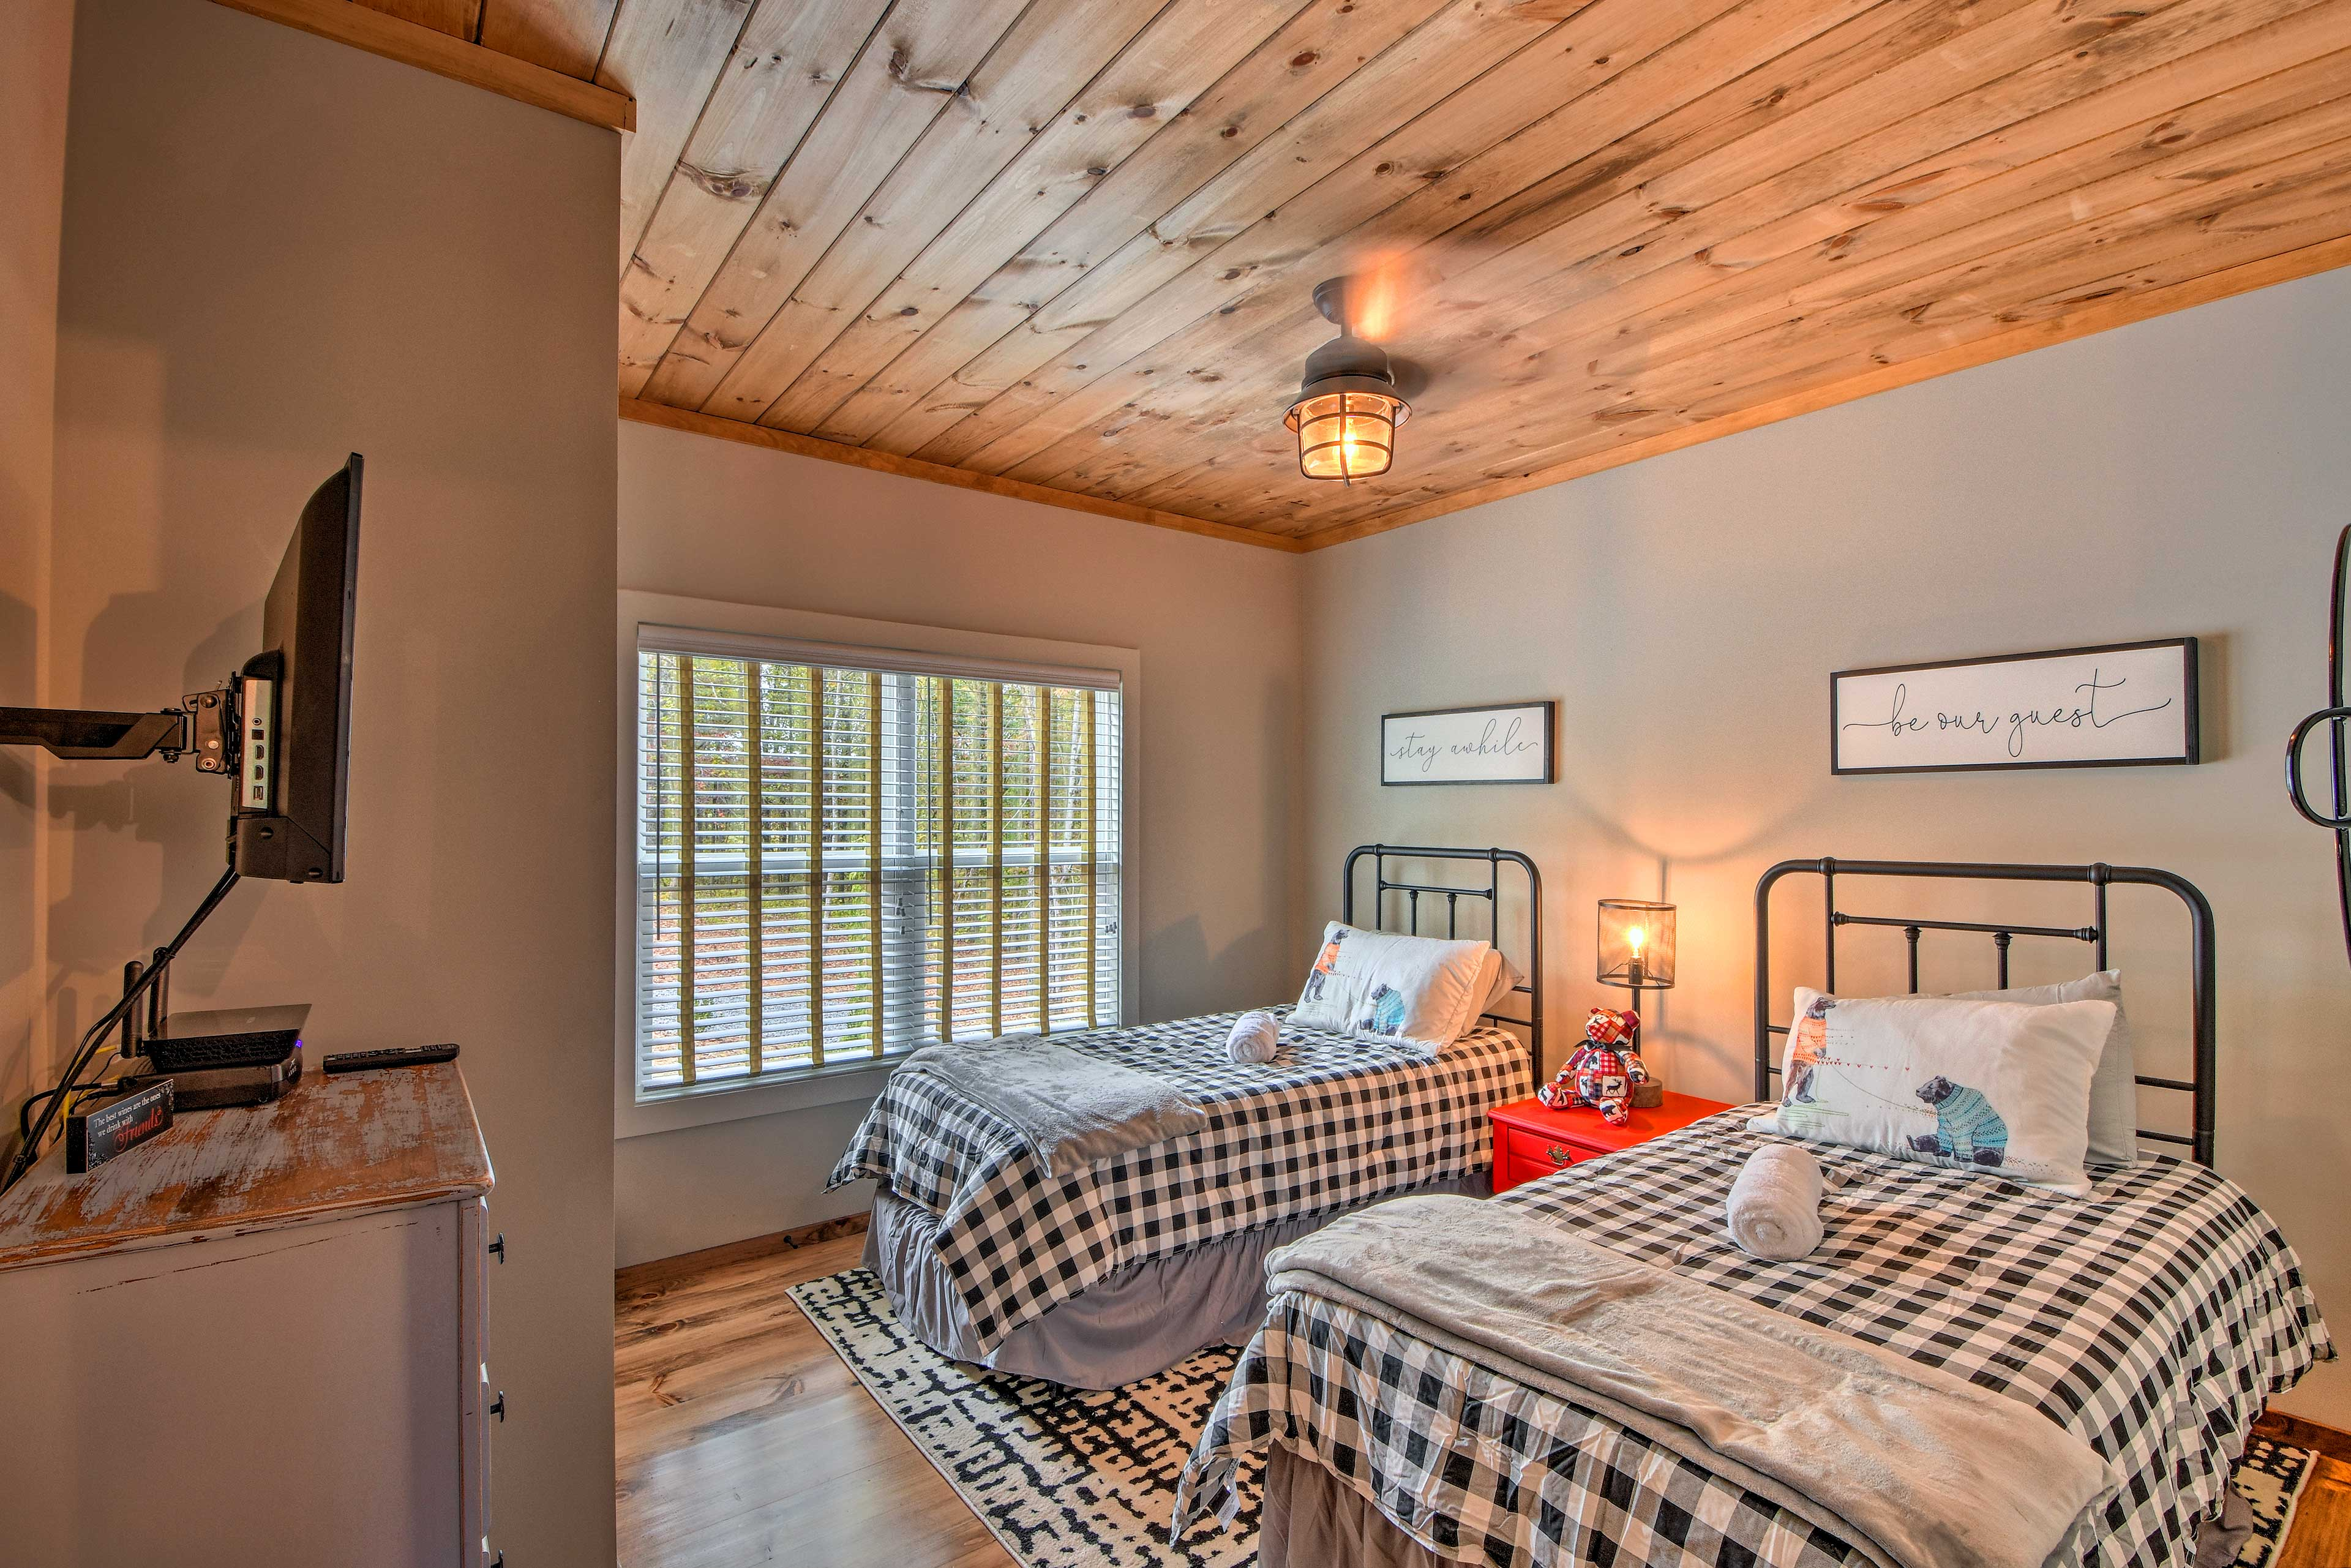 The third bedroom features 2 twin beds.